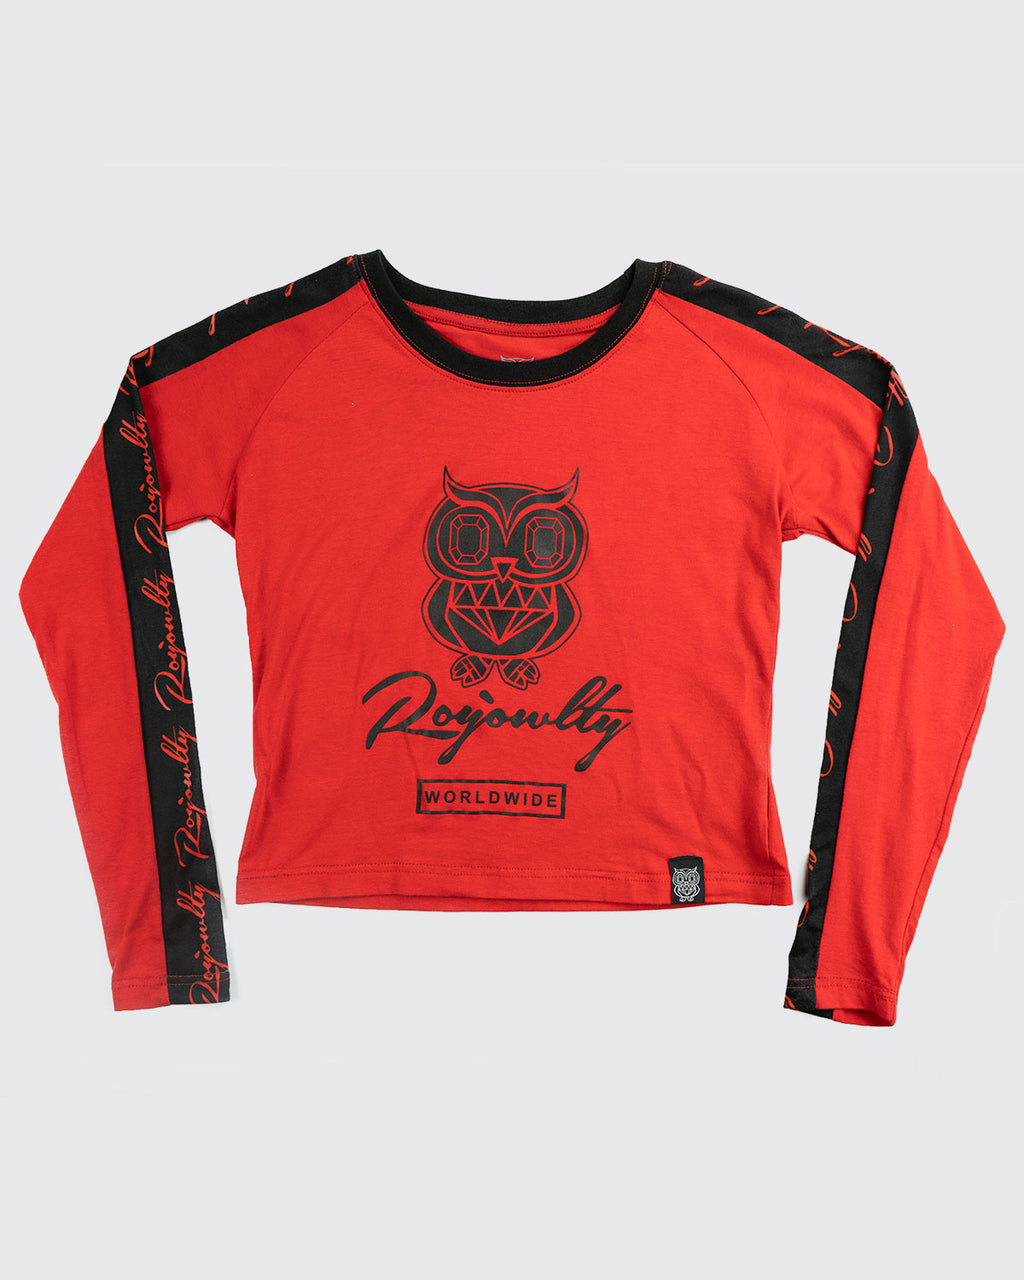 Originals Crop Top(long sleeve)- Red